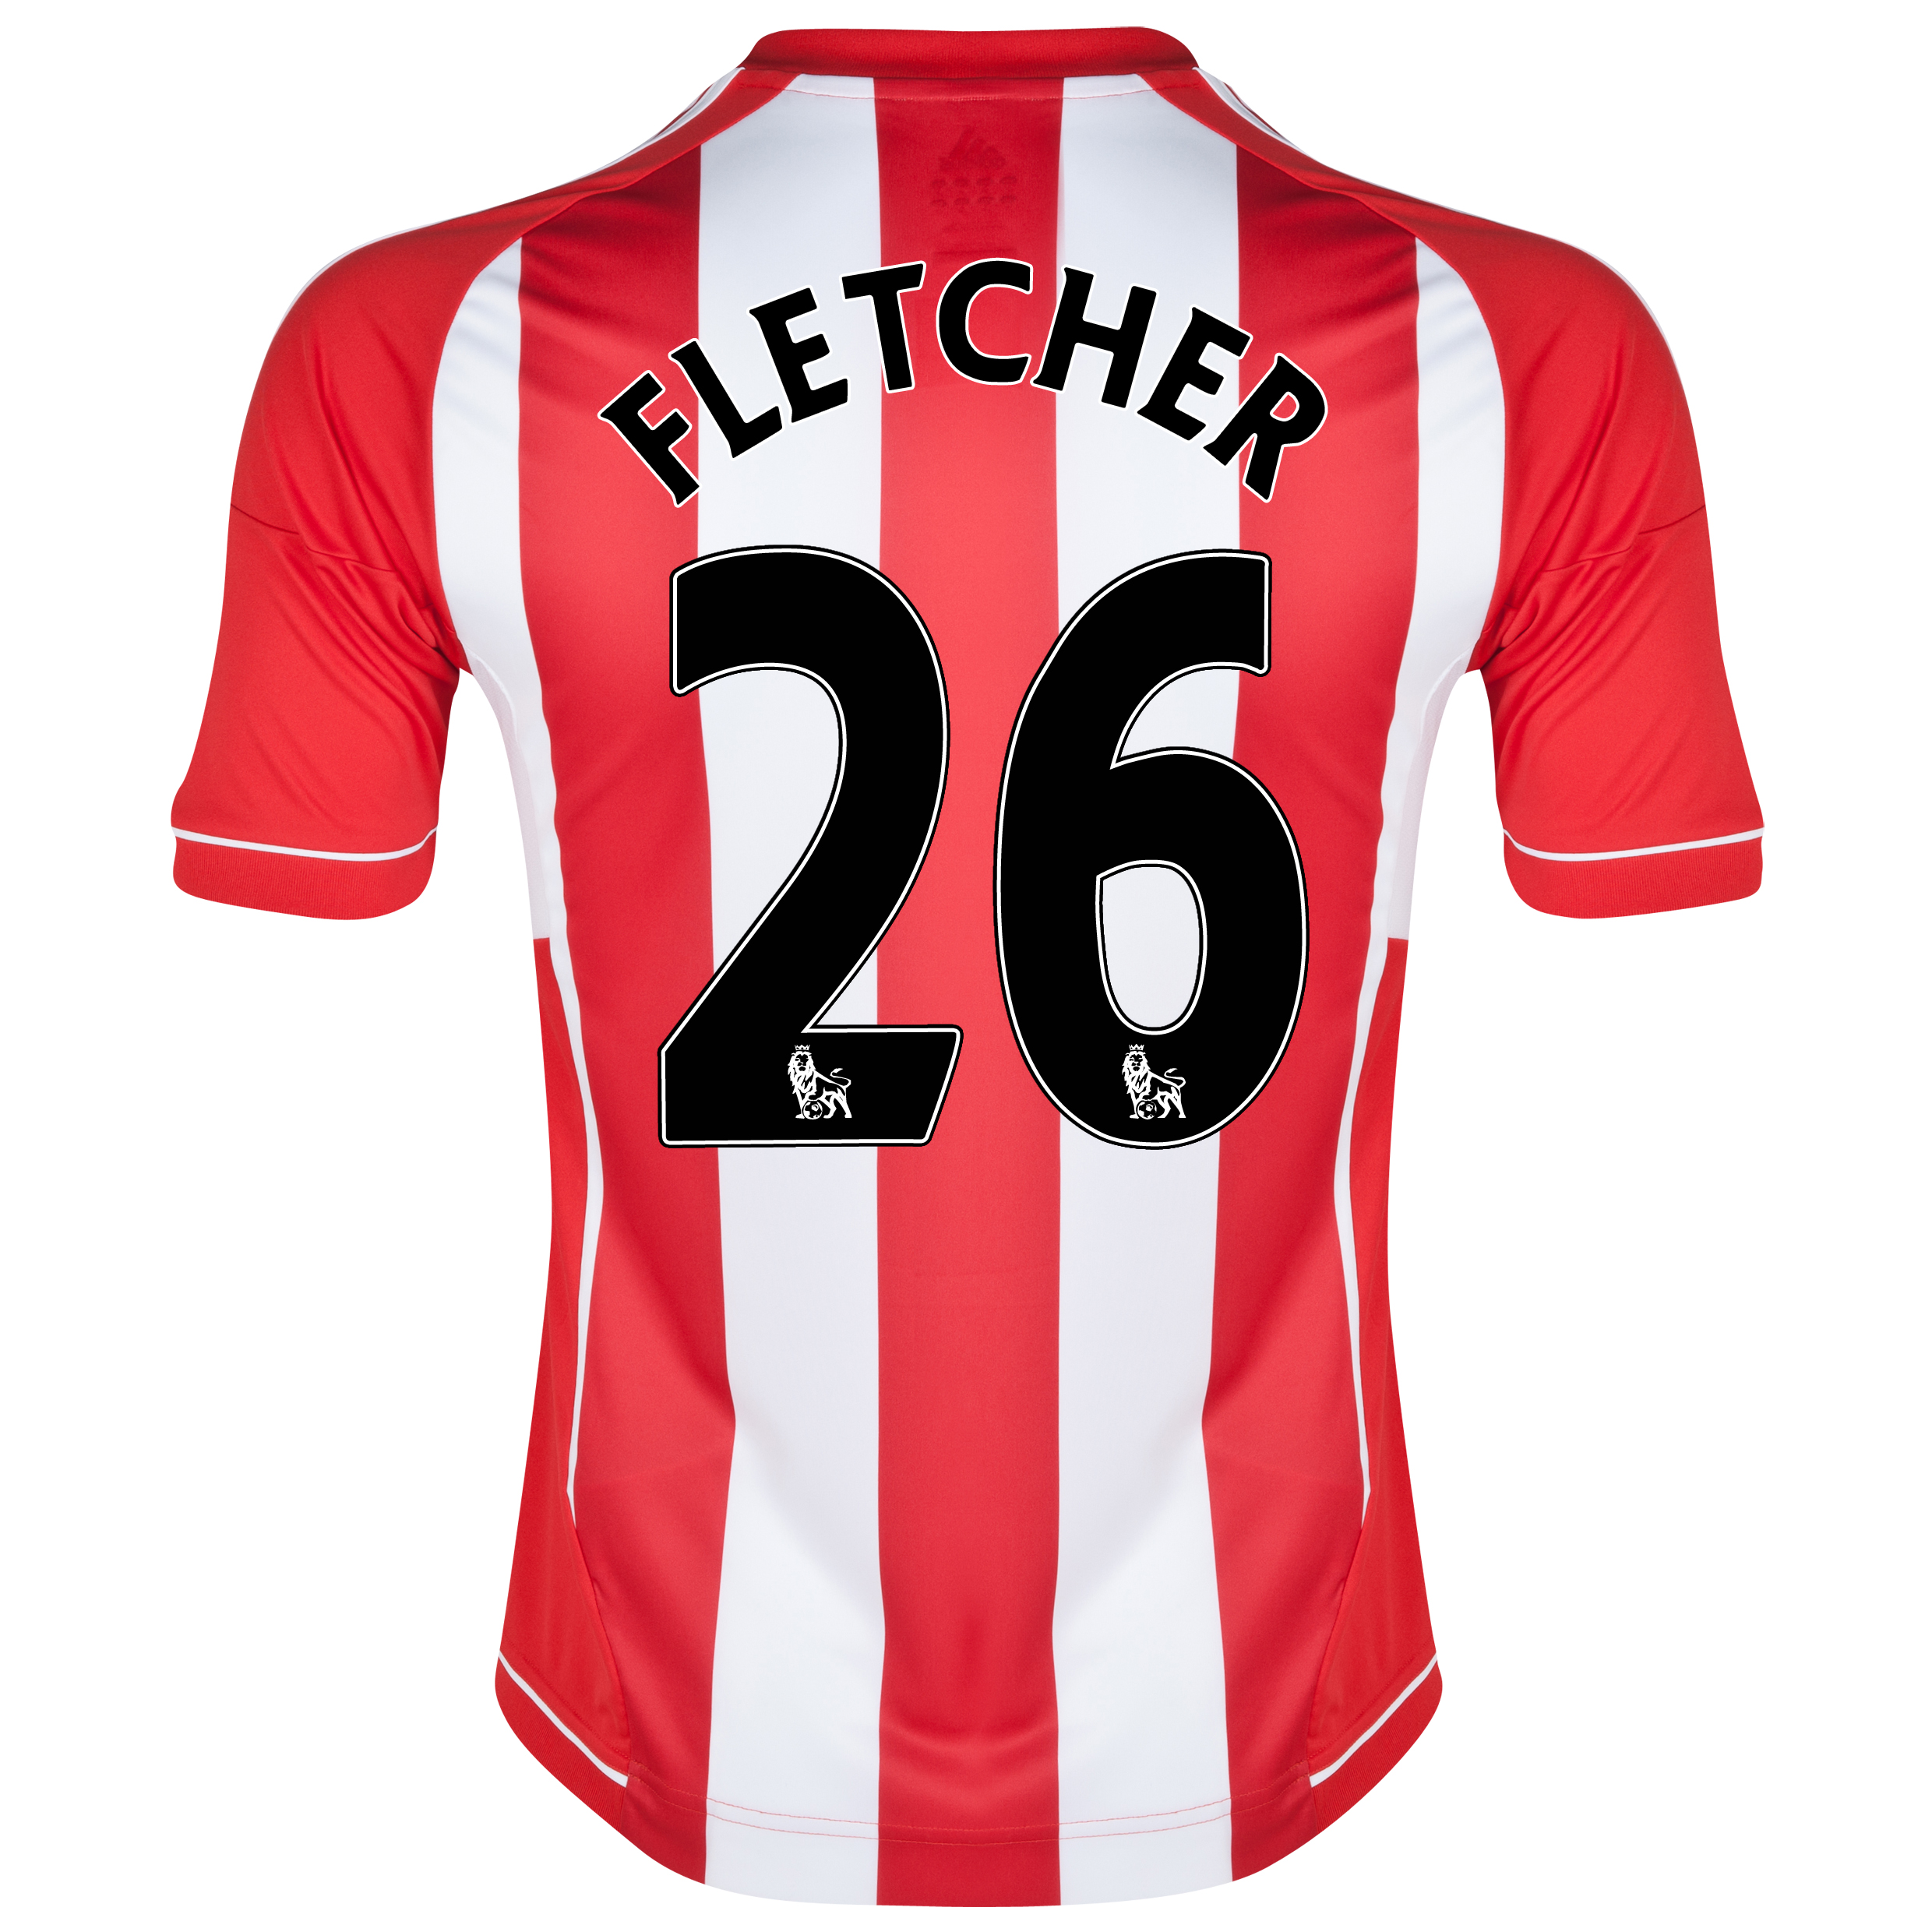 Sunderland Home Shirt 2012/13 with Fletcher 26 printing